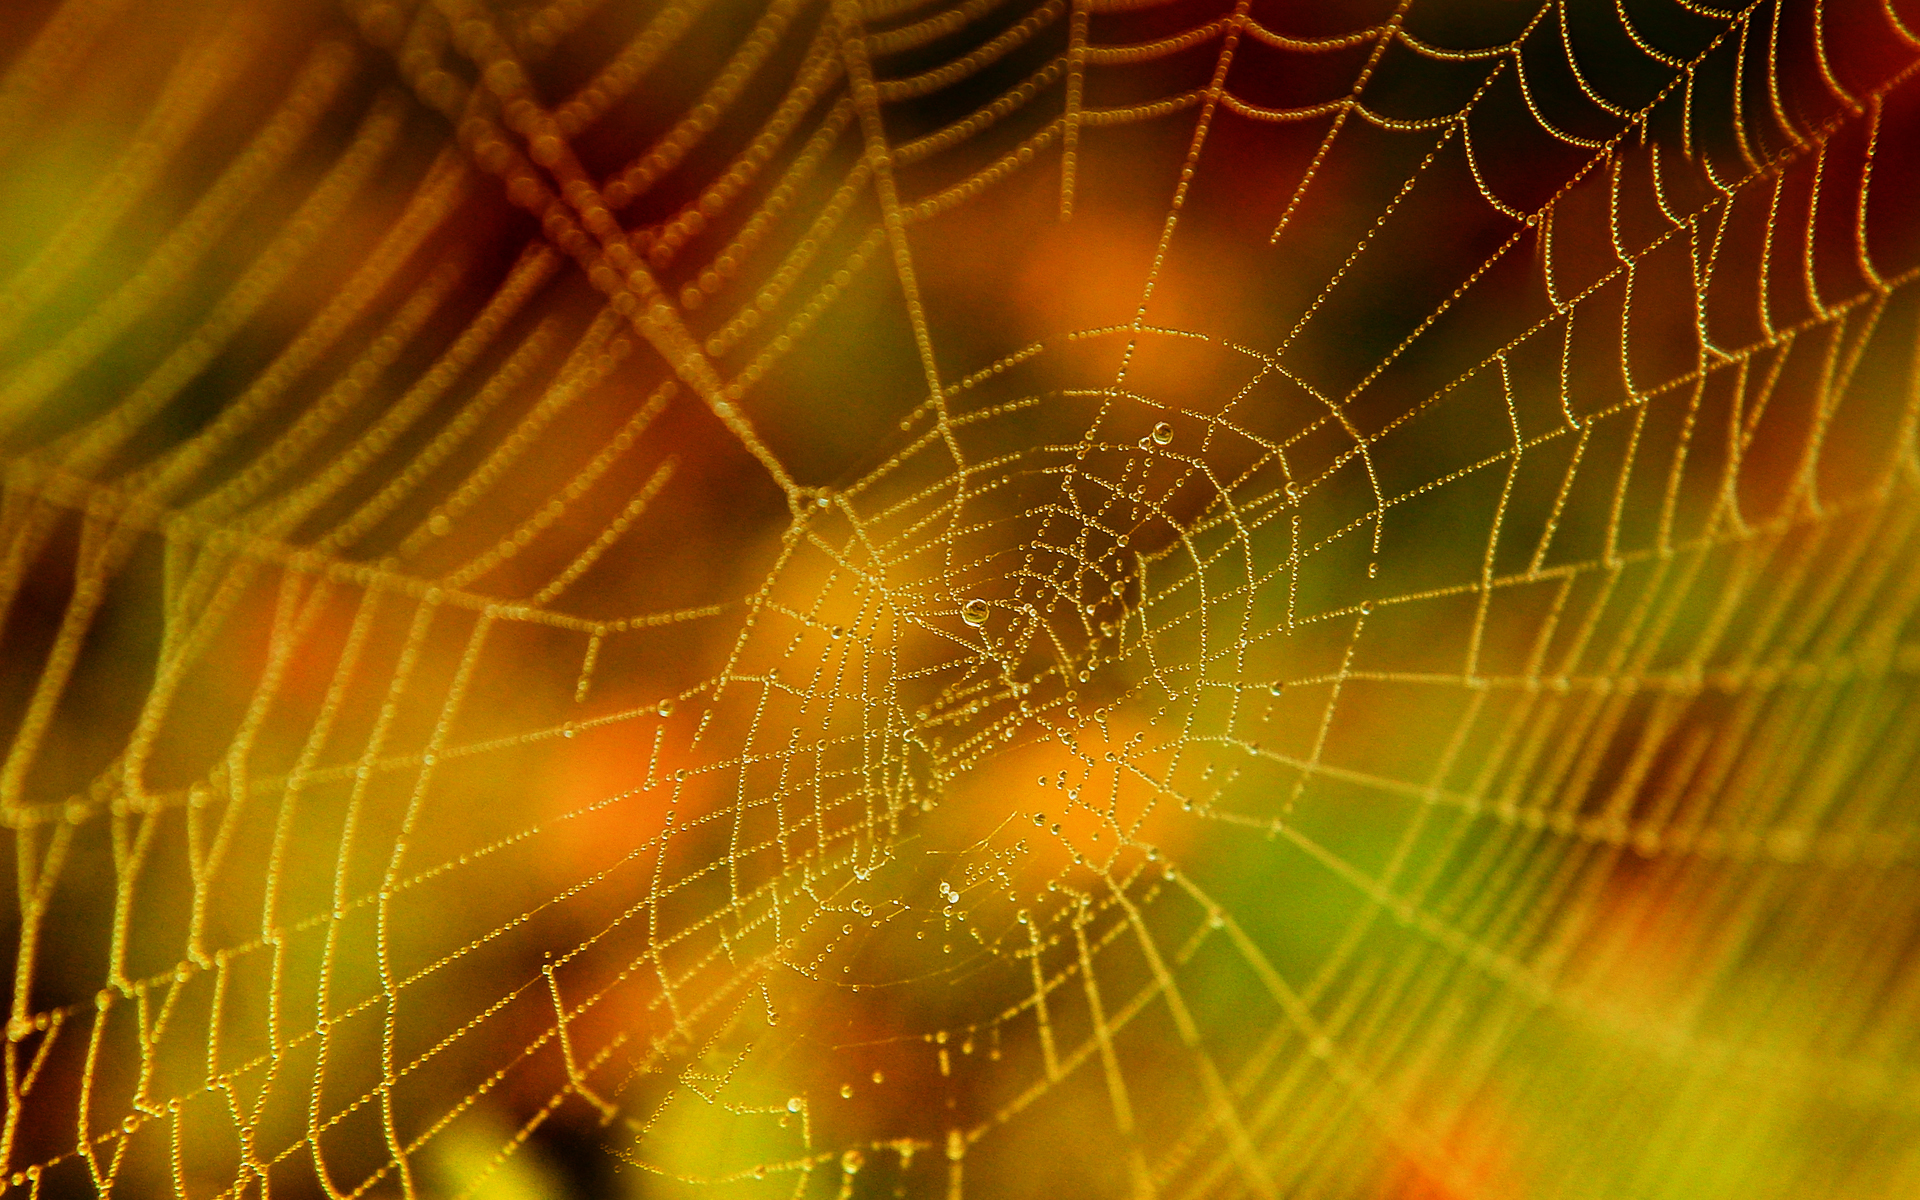 How To Make A Spider Web For Halloween